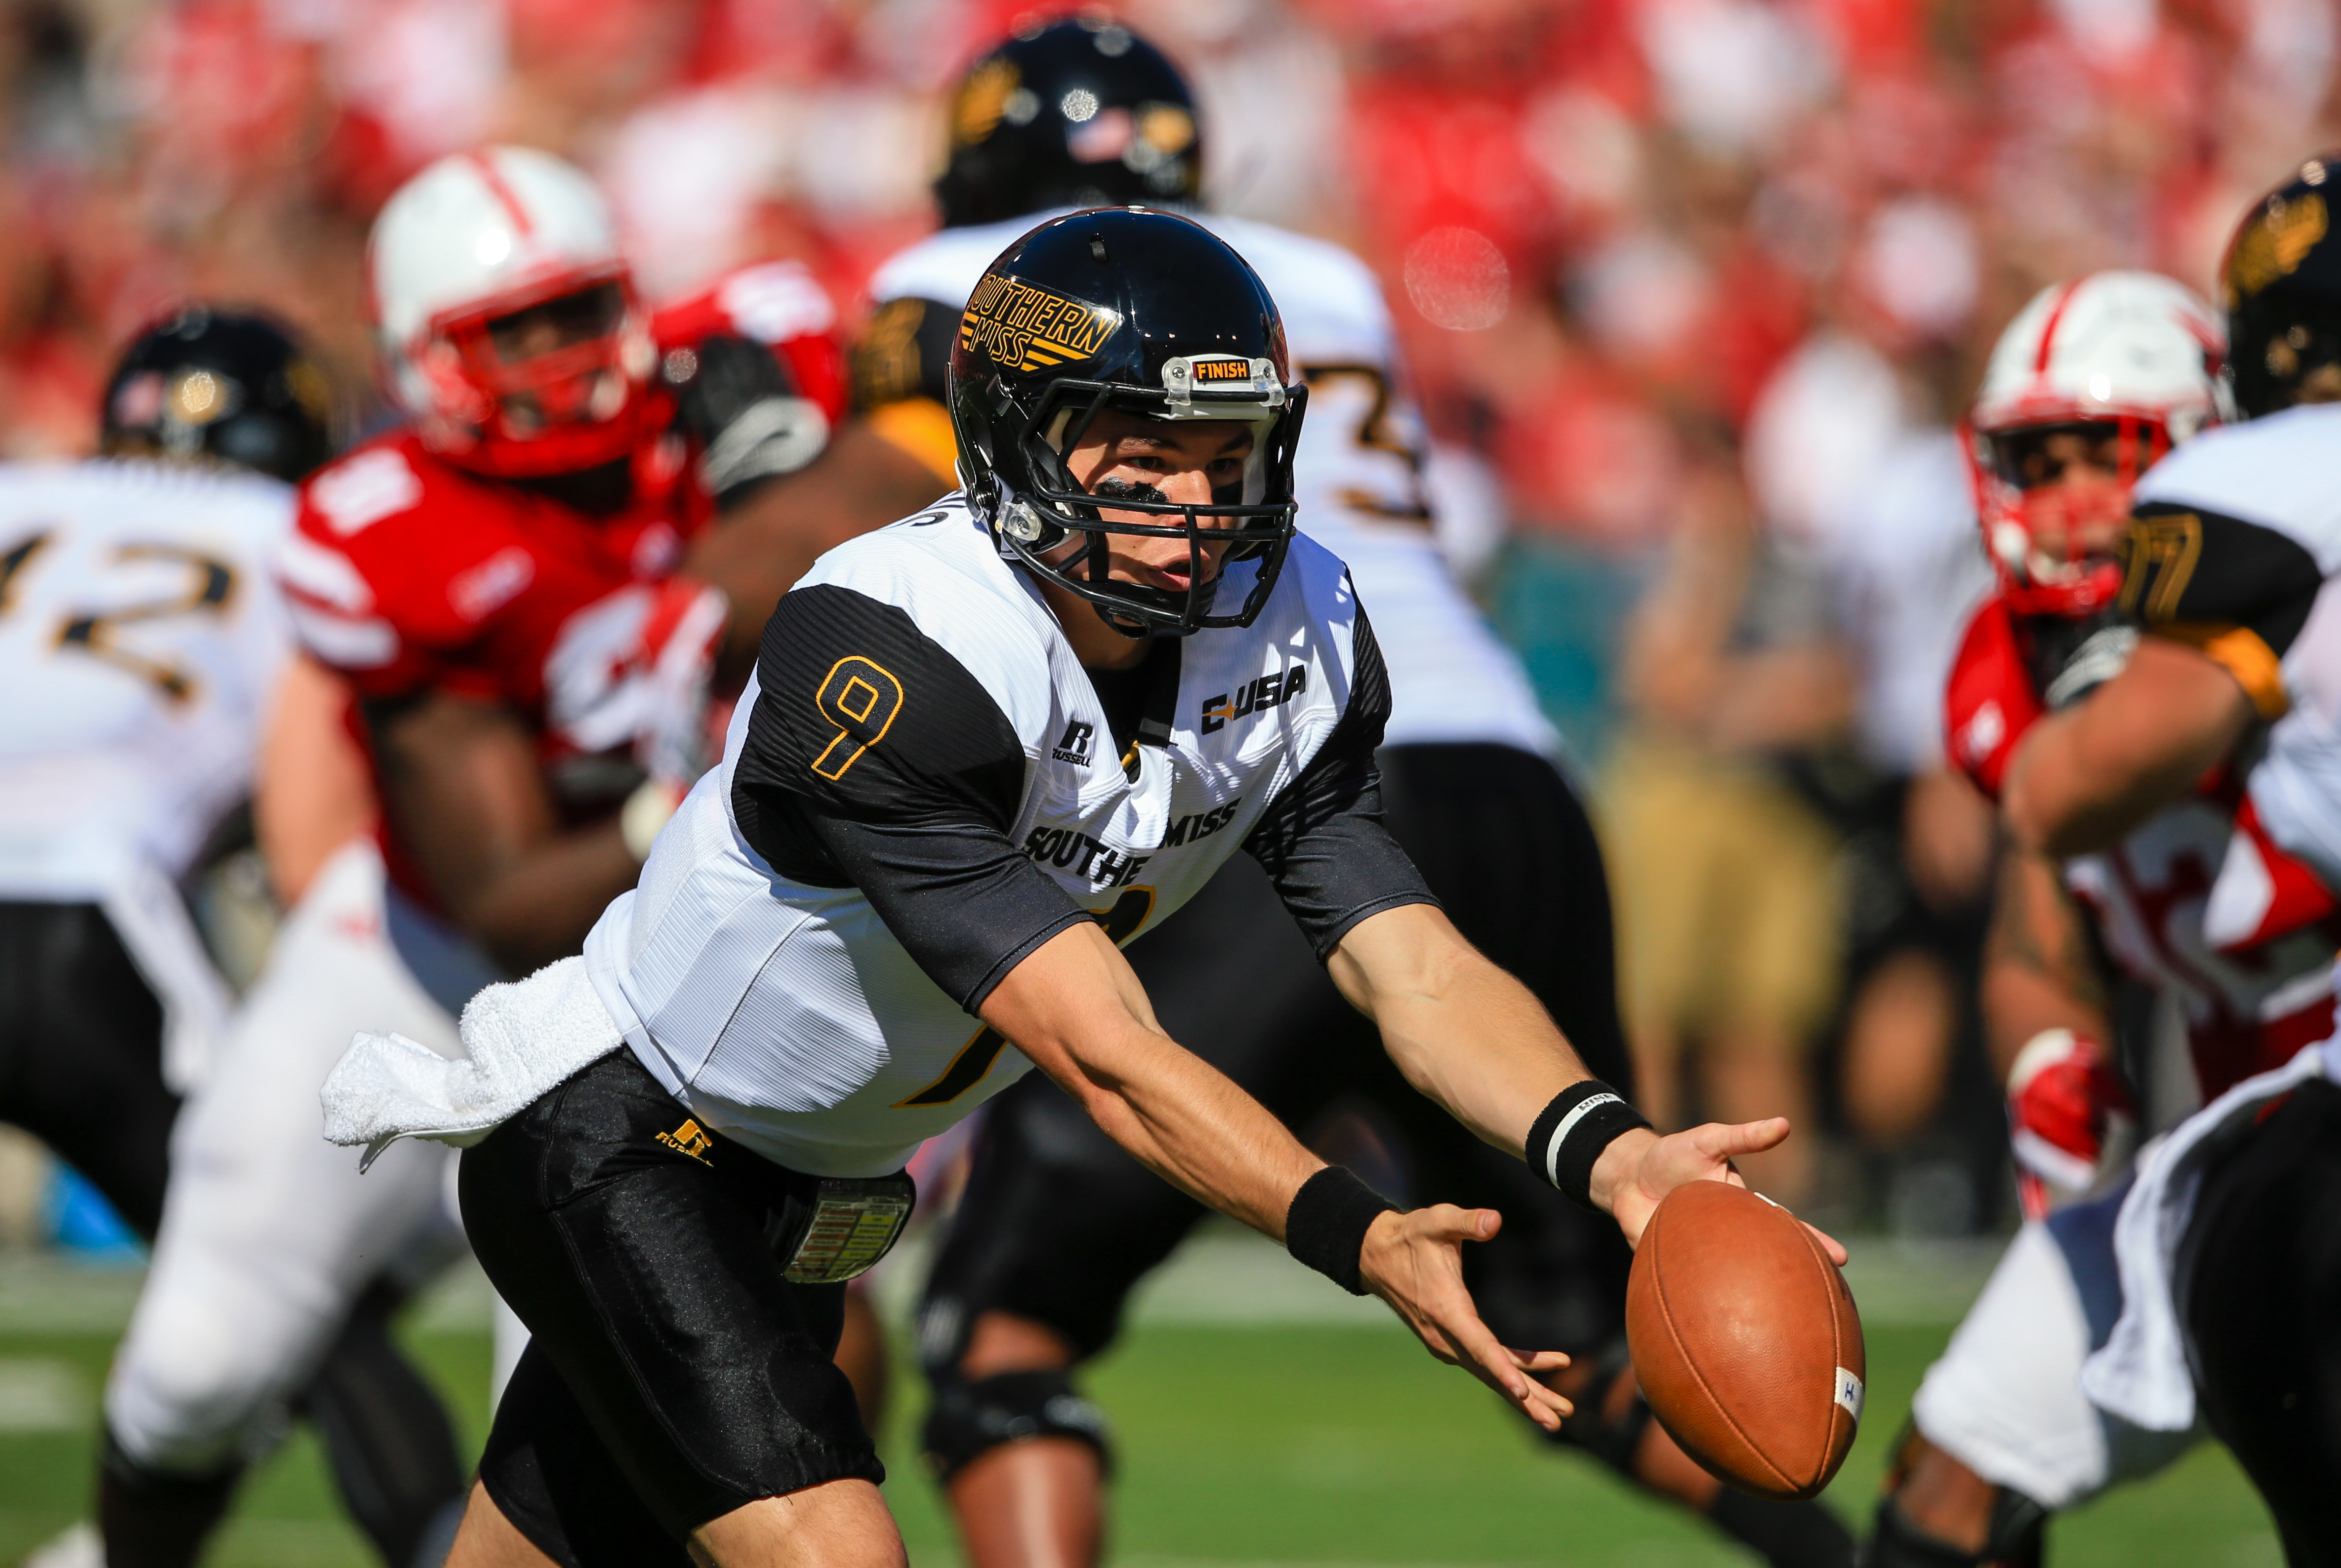 Southern Miss quarterback Nick Mullens (9) hands off the ball during the first half of an NCAA college football game against Nebraska in Lincoln, Neb., Saturday, Sept. 26, 2015. (AP Photo/Nati Harnik)